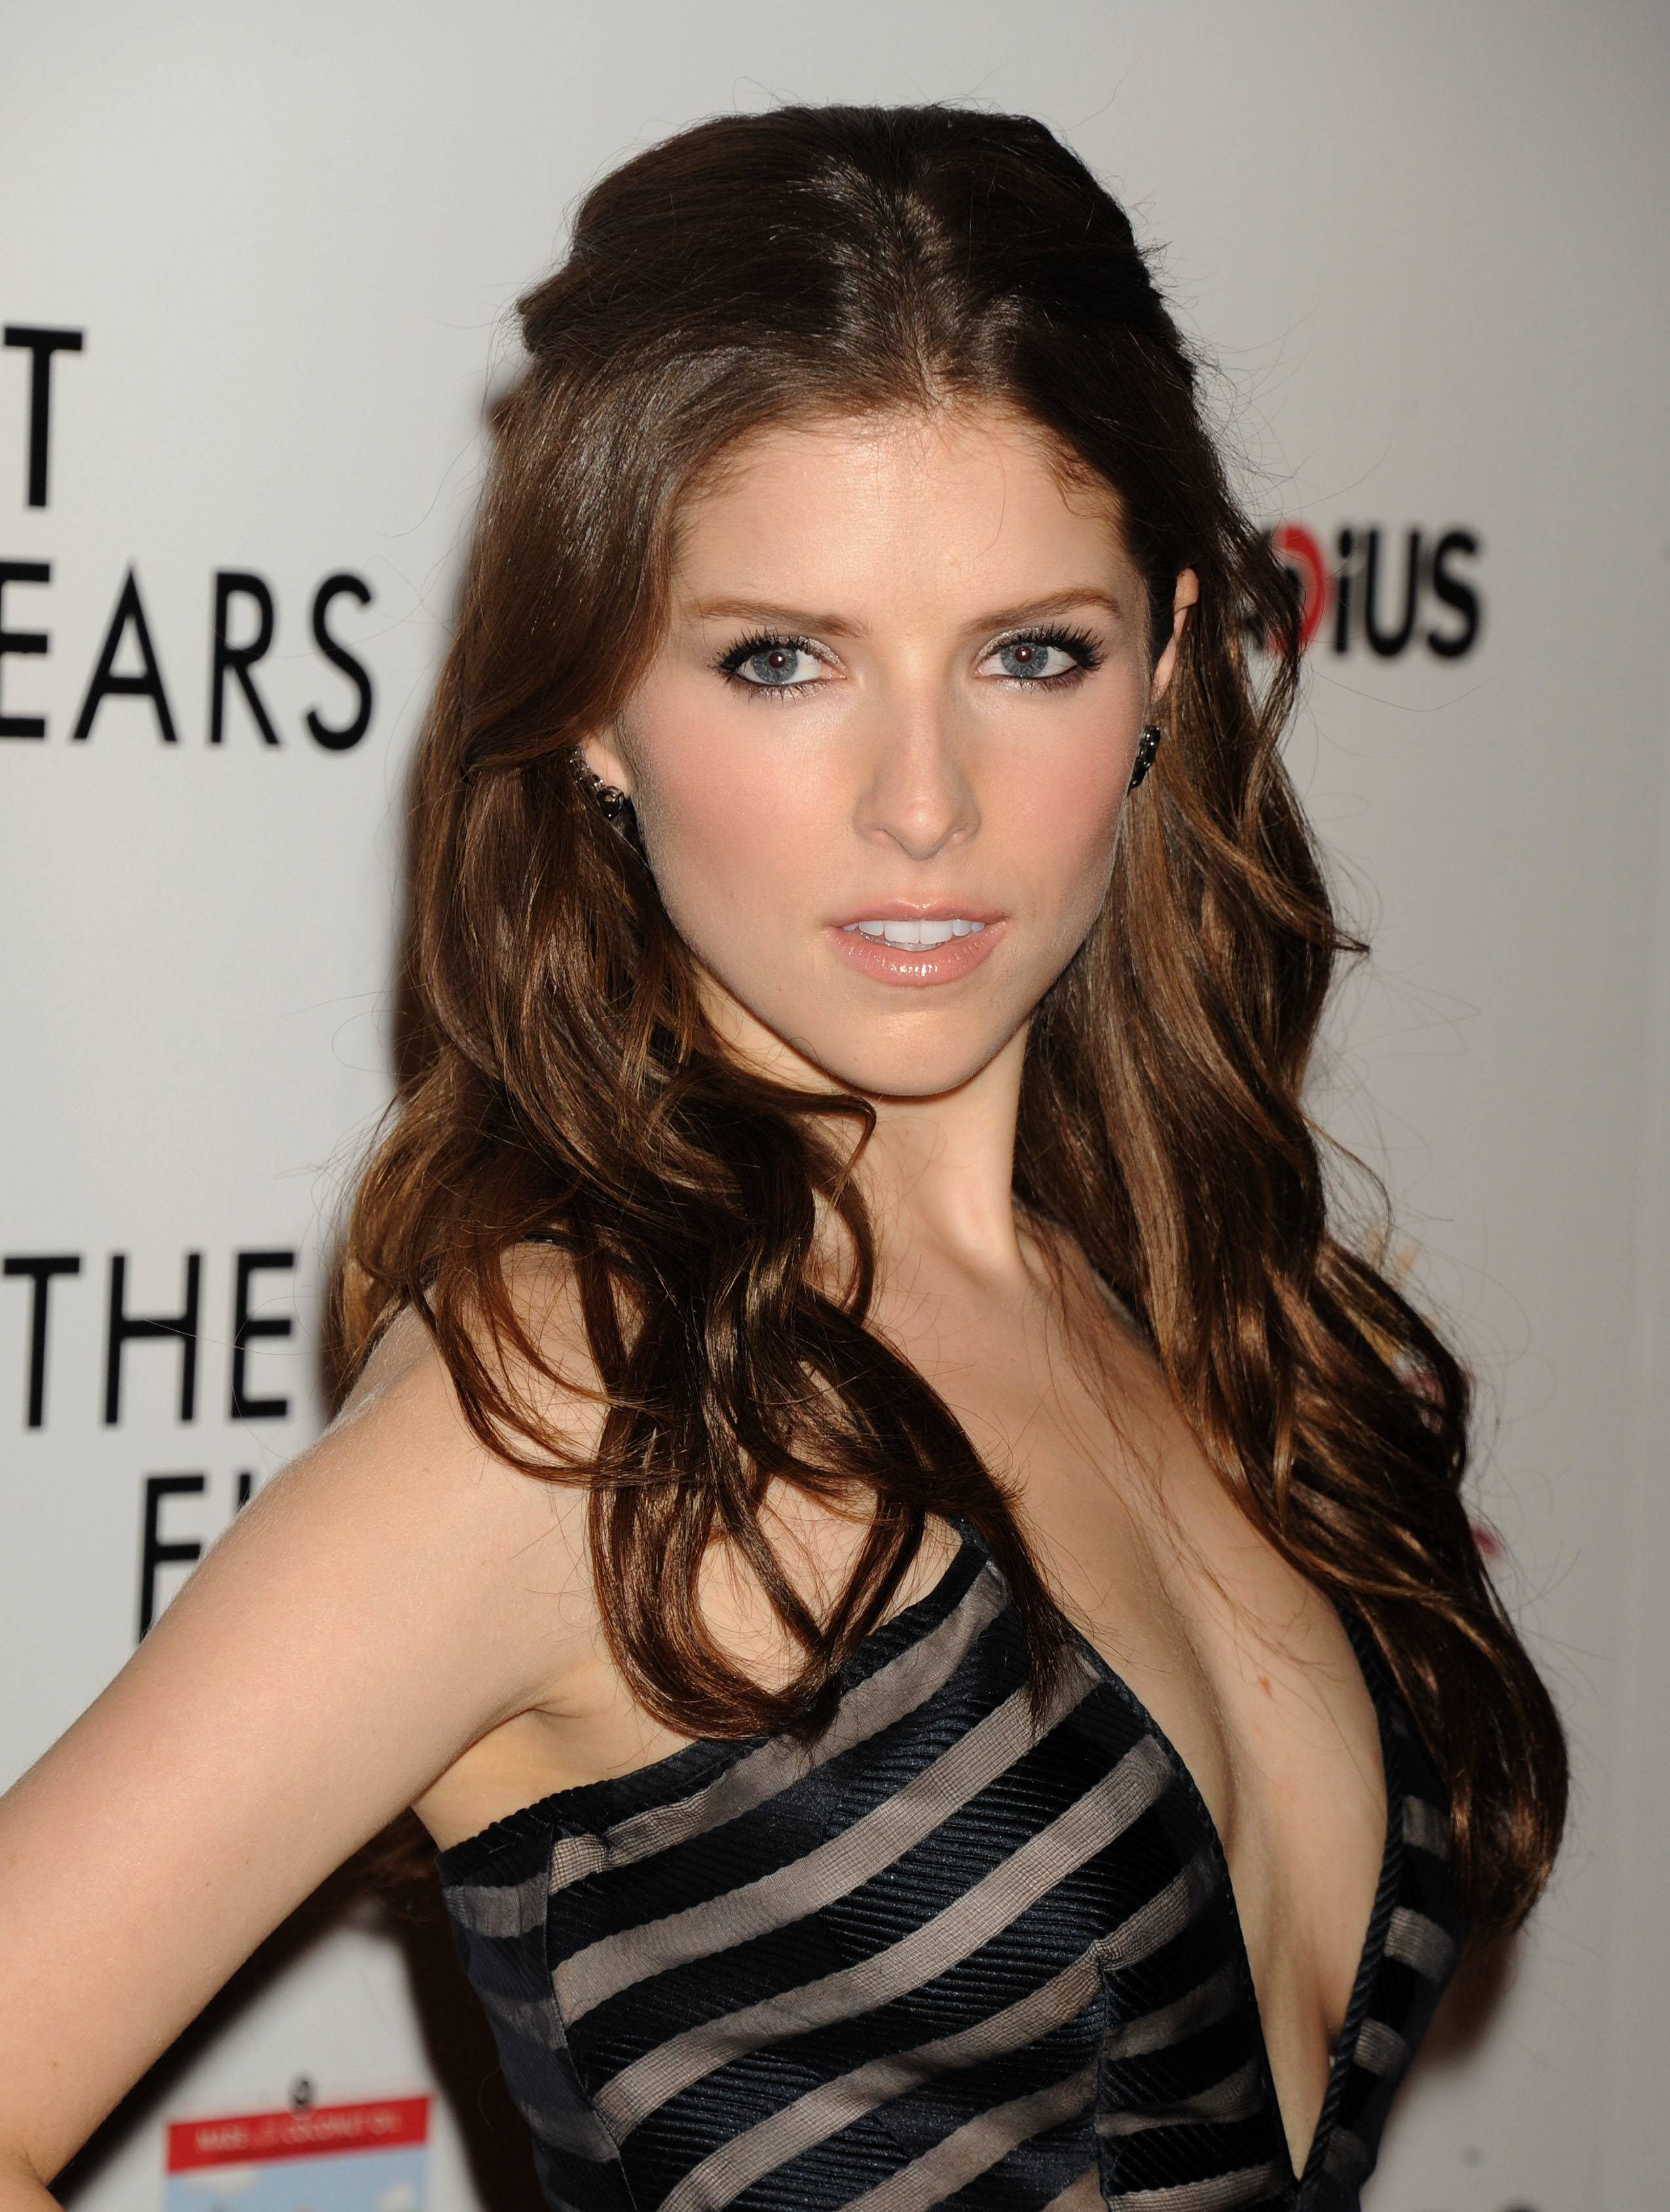 Anna kendrick for smartphone ololoshka pinterest anna kendrick anna kendrick for smartphone voltagebd Image collections